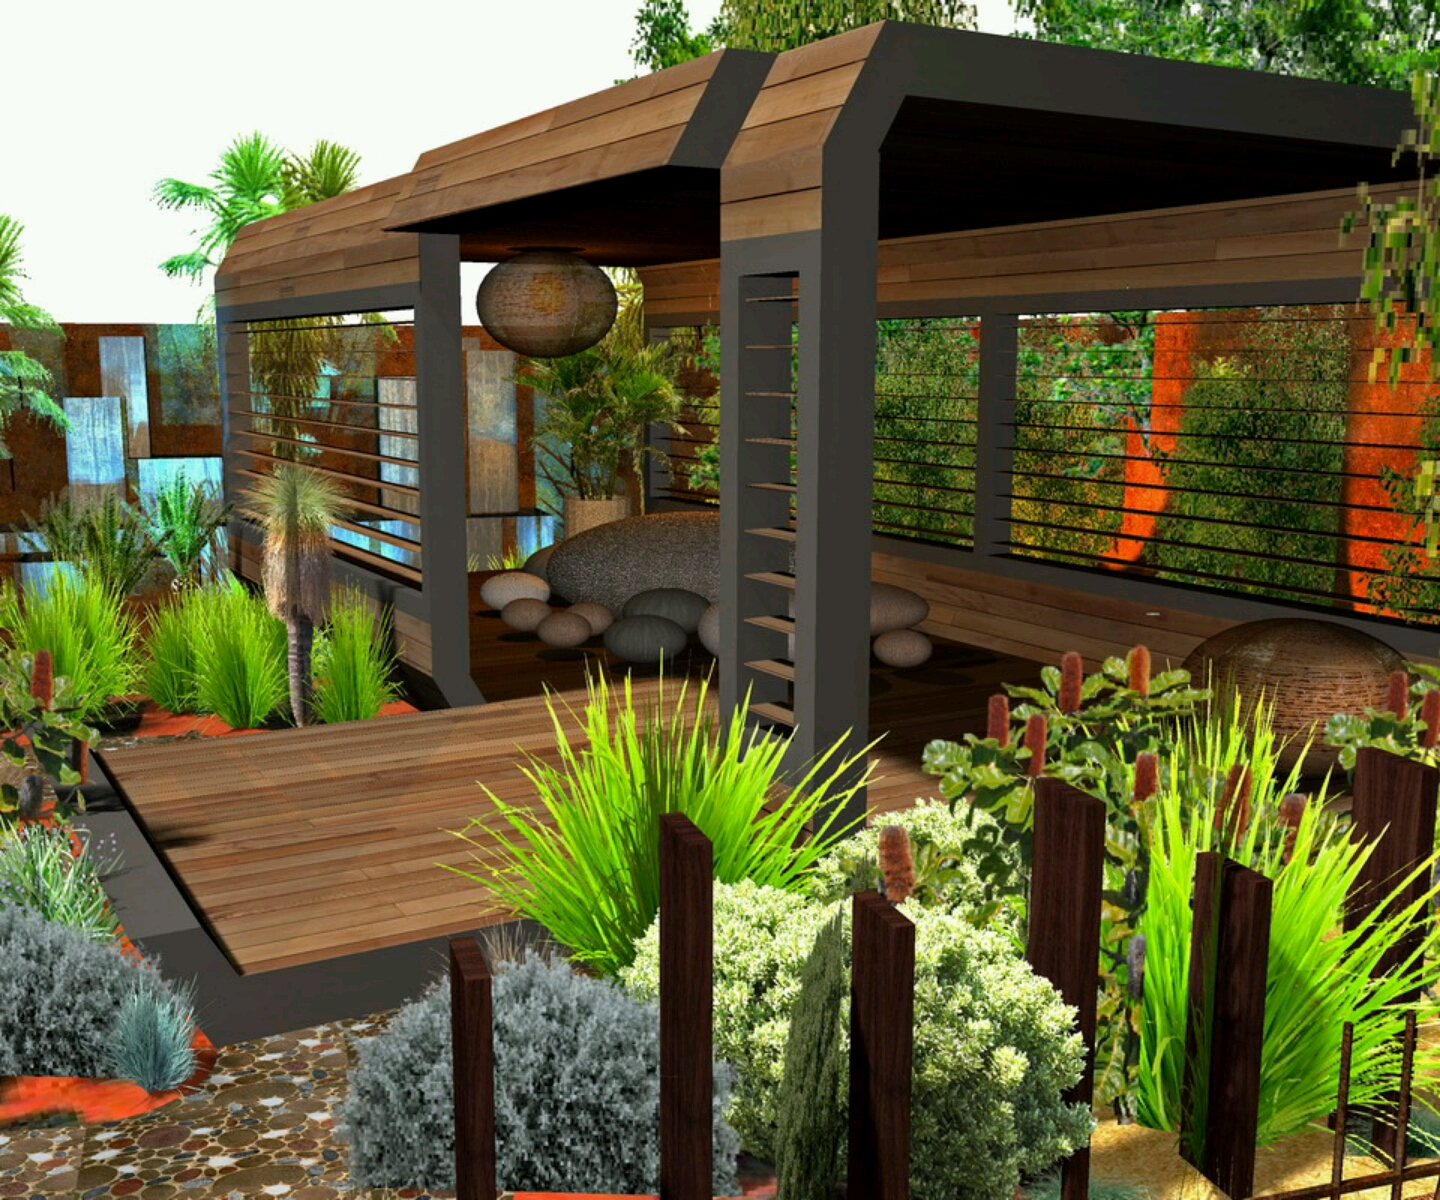 New home designs latest modern homes garden designs ideas for Garden design pictures